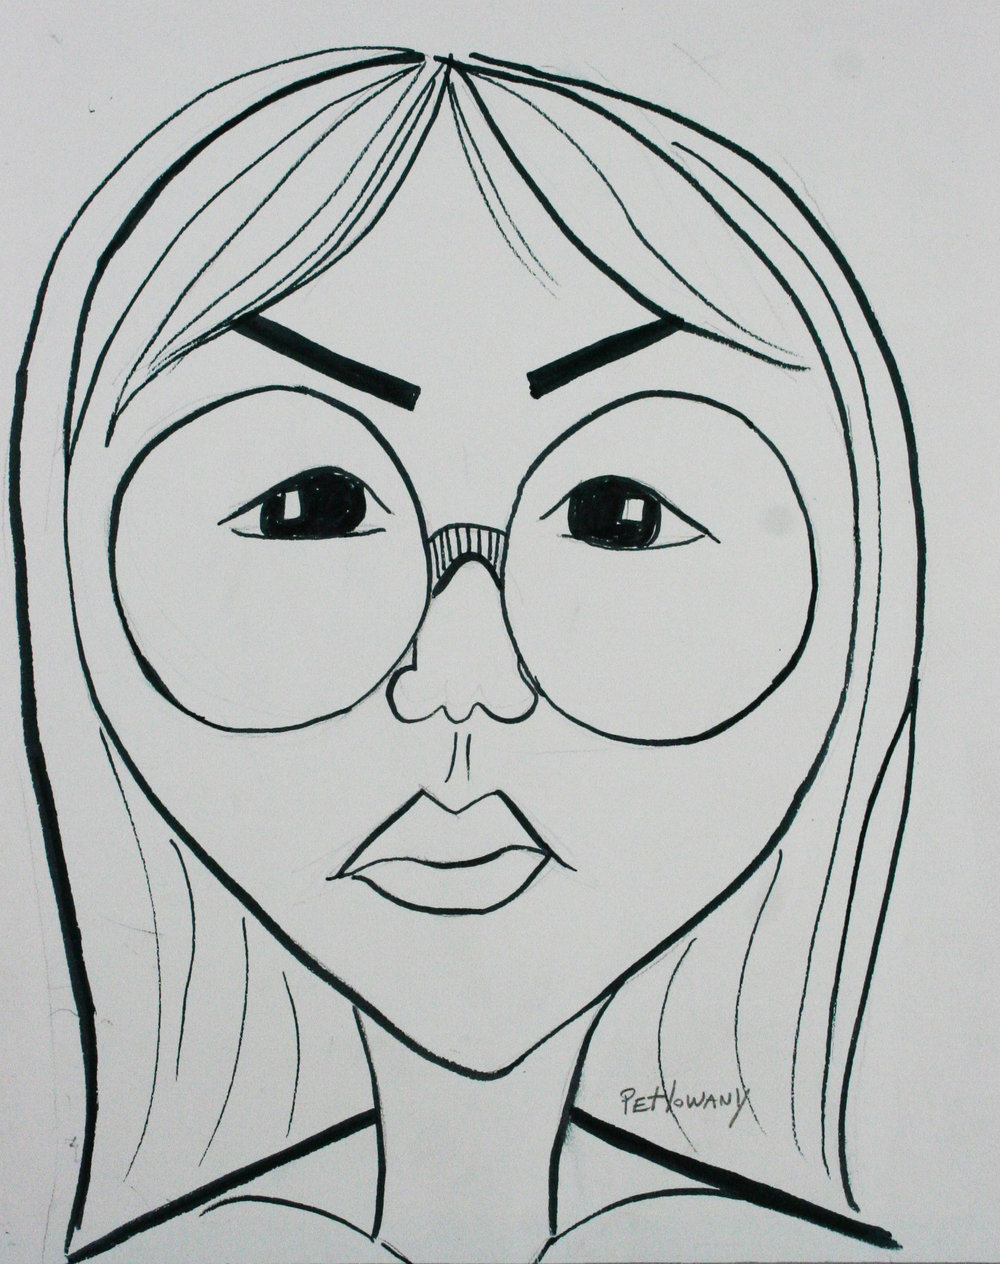 Paula Petlowany did this quick caricature